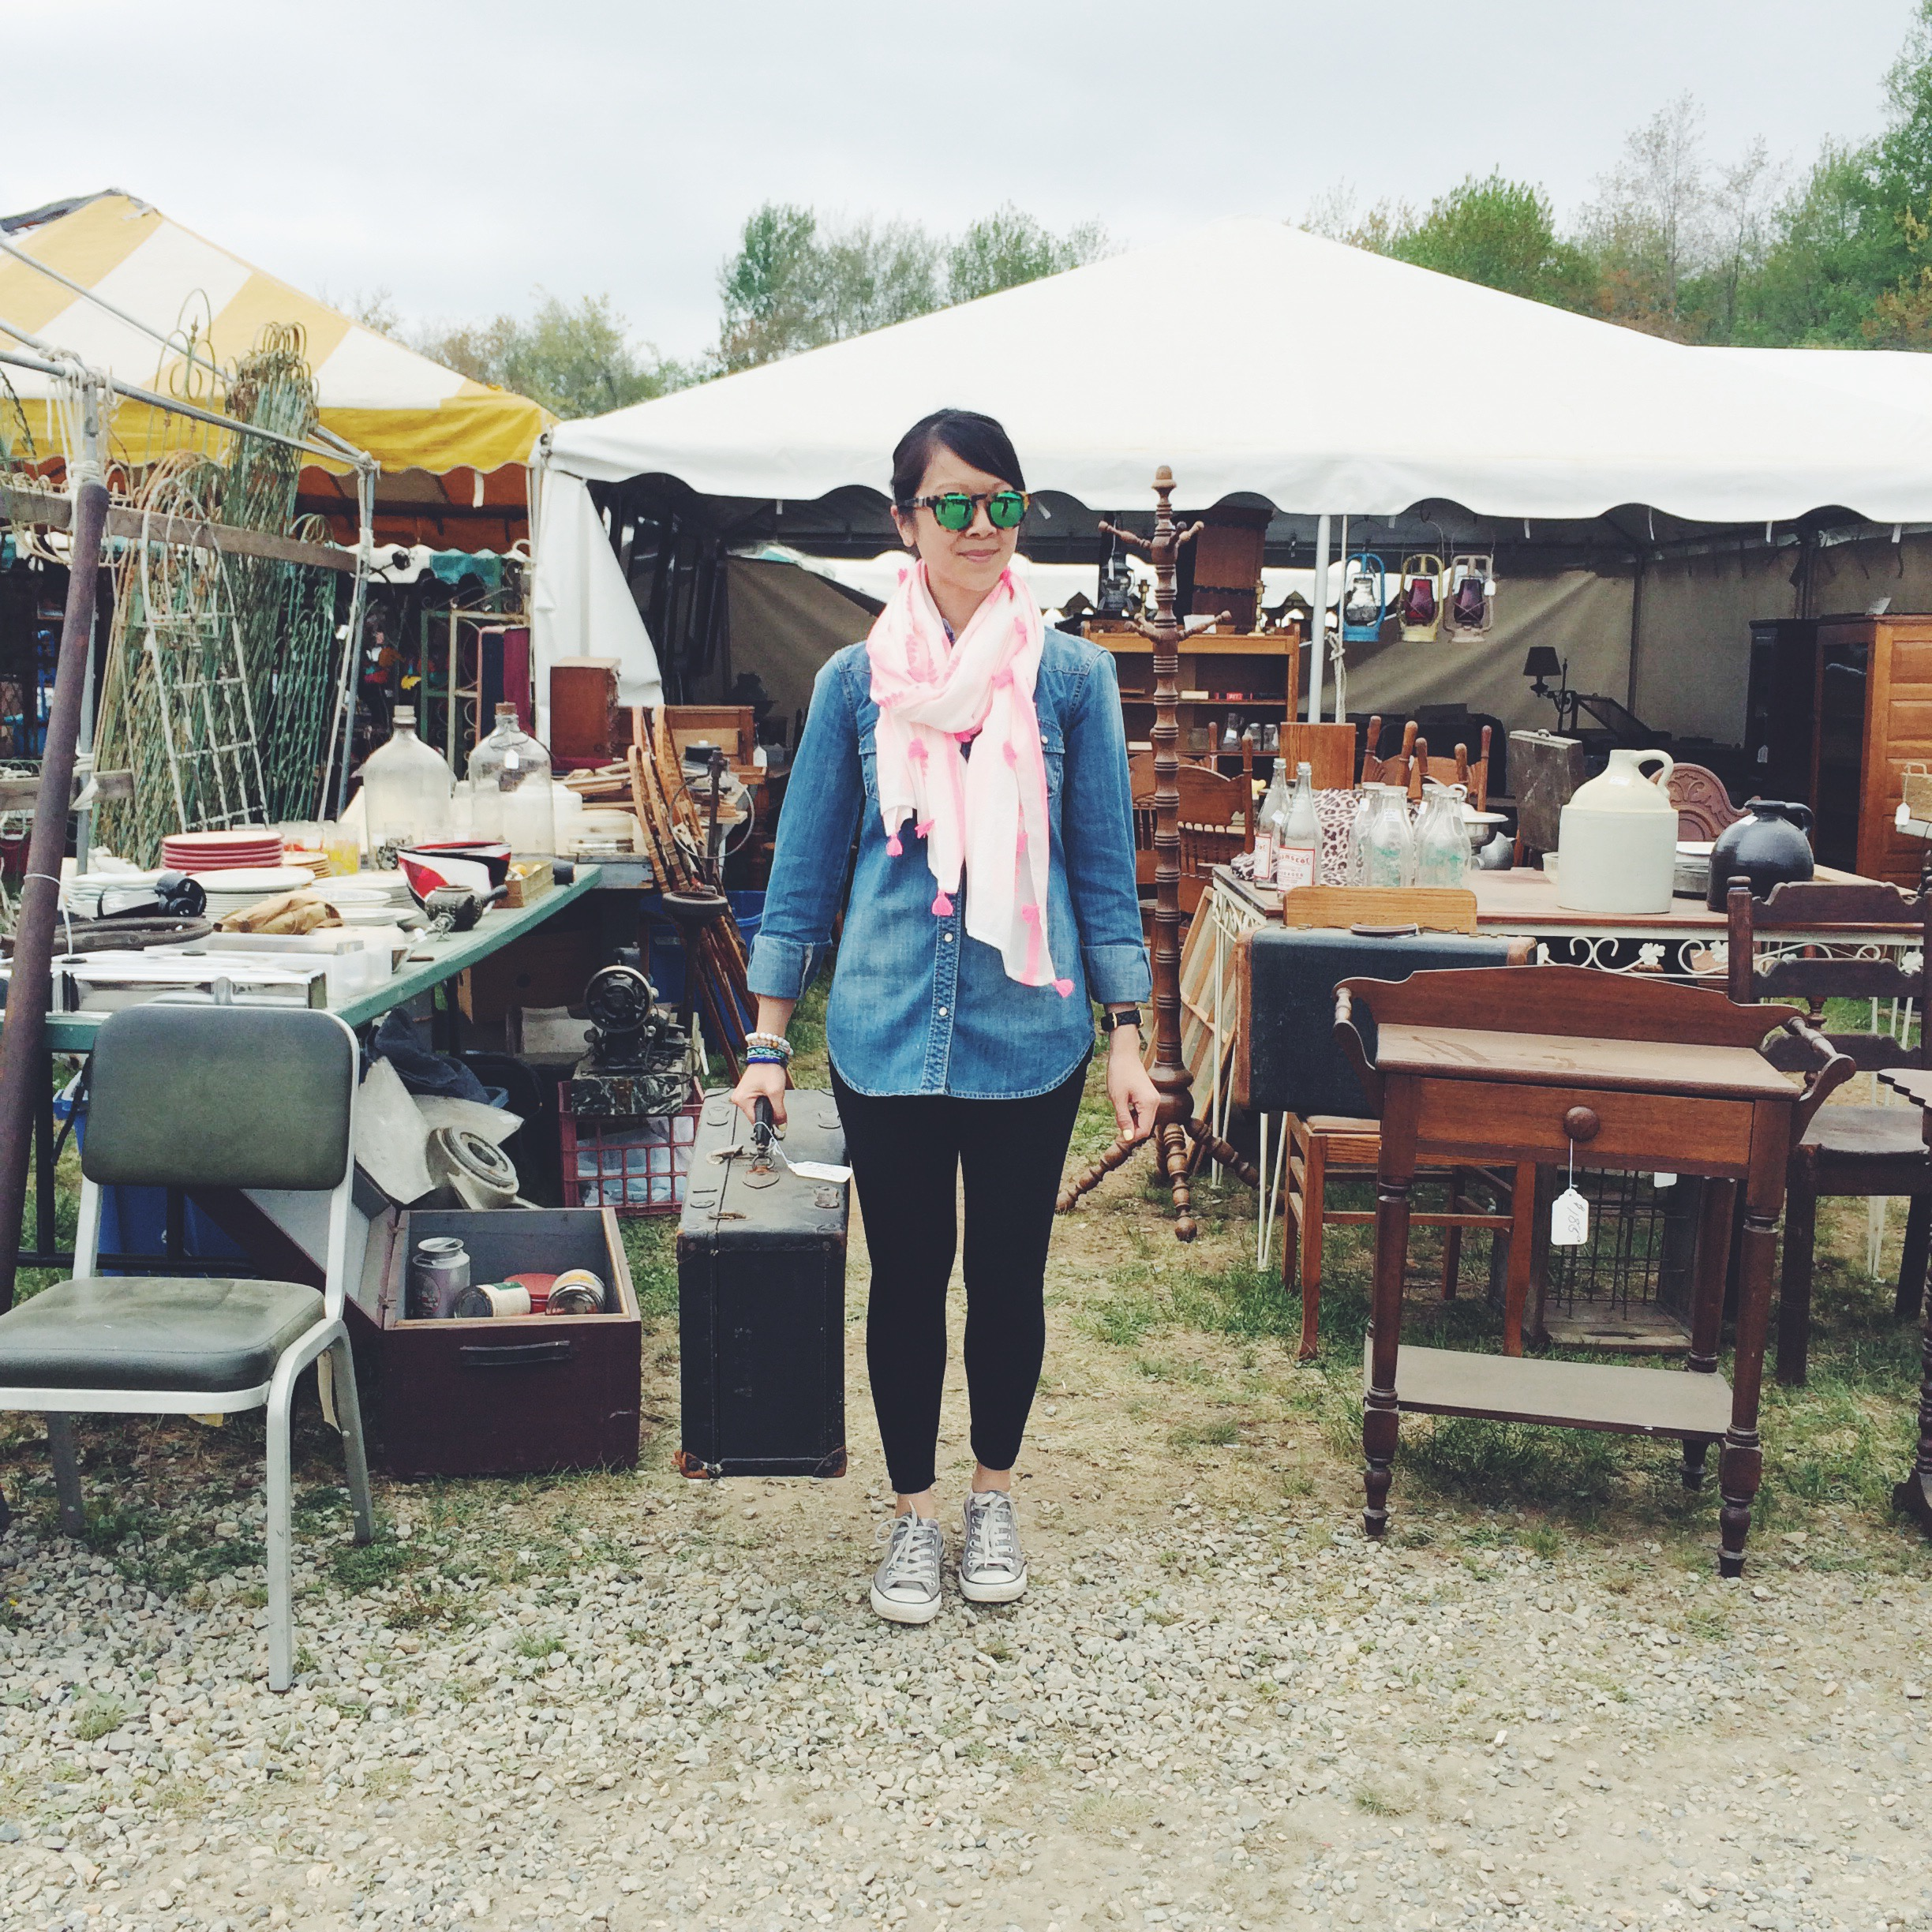 """Finally, I made it to the  Brimfield Antique Show ! After years of enviously hearing about other people's trips to the show and all the great pics on IG, I decided that it was time I put this event on my calendar. So, this past Saturday, my friend Steph G and I jumped into my Mini and headed to the antique show where we met up with my friend Steph W, who drove in from Brooklyn. We spent about 4.5 hours browsing the varied wares offered by hundreds of vendors; definitely something for everyone. I think I spent half of the time there asking: """"what is this"""" or """"what does that do?"""" Luckily the vendors didn't seem too annoyed with me as I'm sure they get those same questions all day long. And the furniture! So many pieces I wanted to bring home but because Dan and I live in a 725 square foot condo and I drive a Mini, I could only dream about where they could go if we had more space. Anyhow, here are a few snaps from my day trip to the show. You bet I'll be going back for more!"""